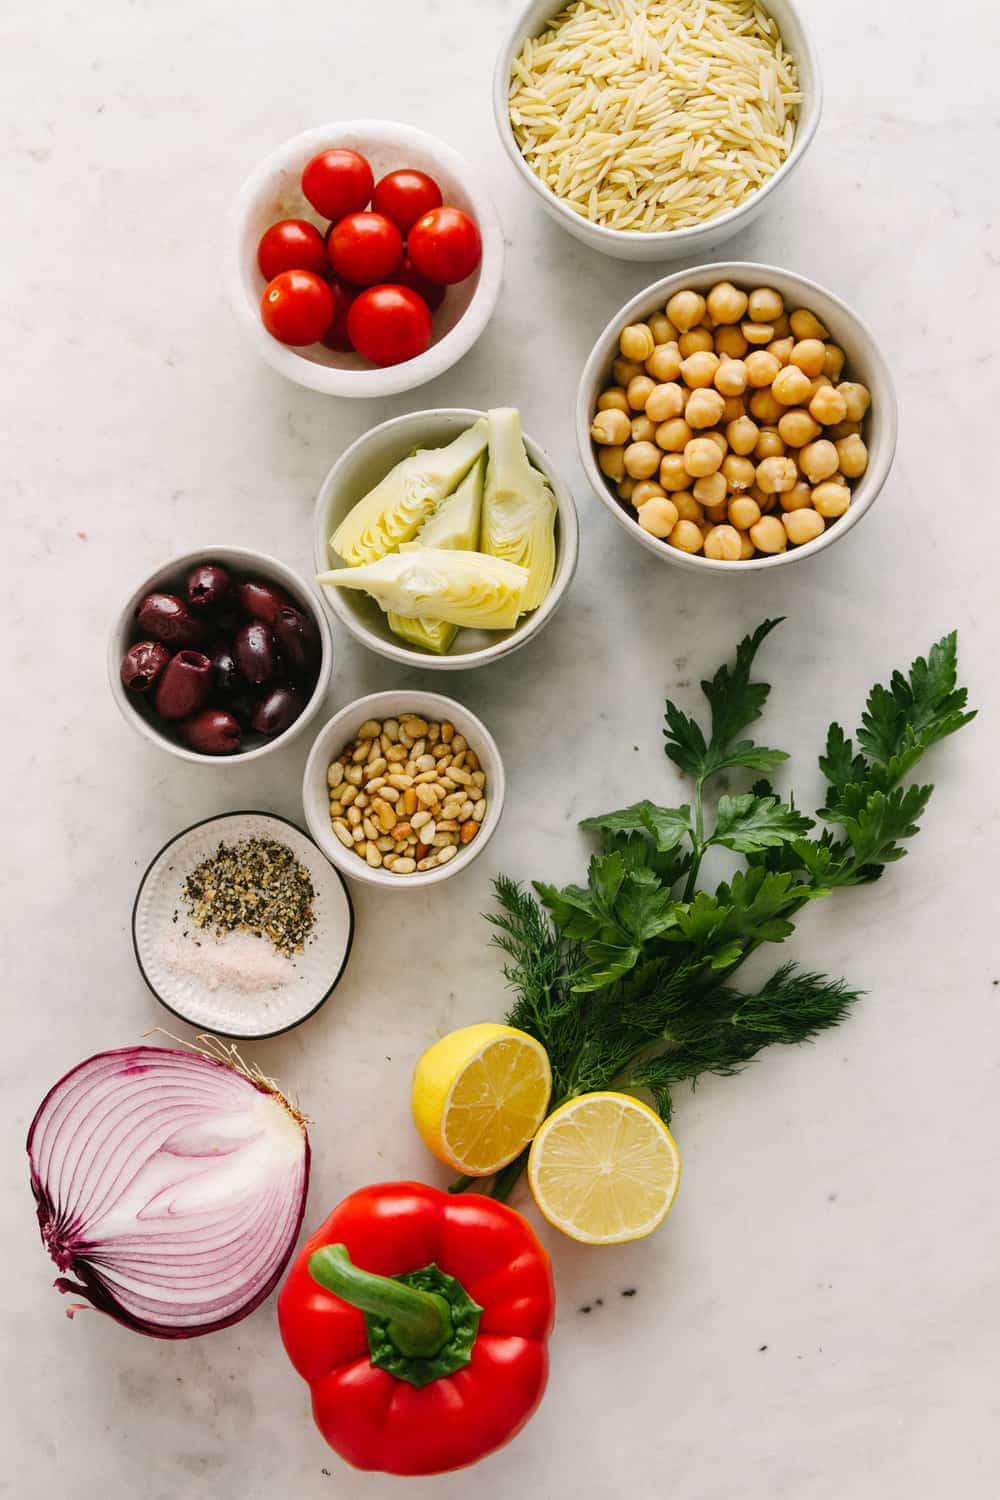 GREEK ORZO SALAD: Ingredients